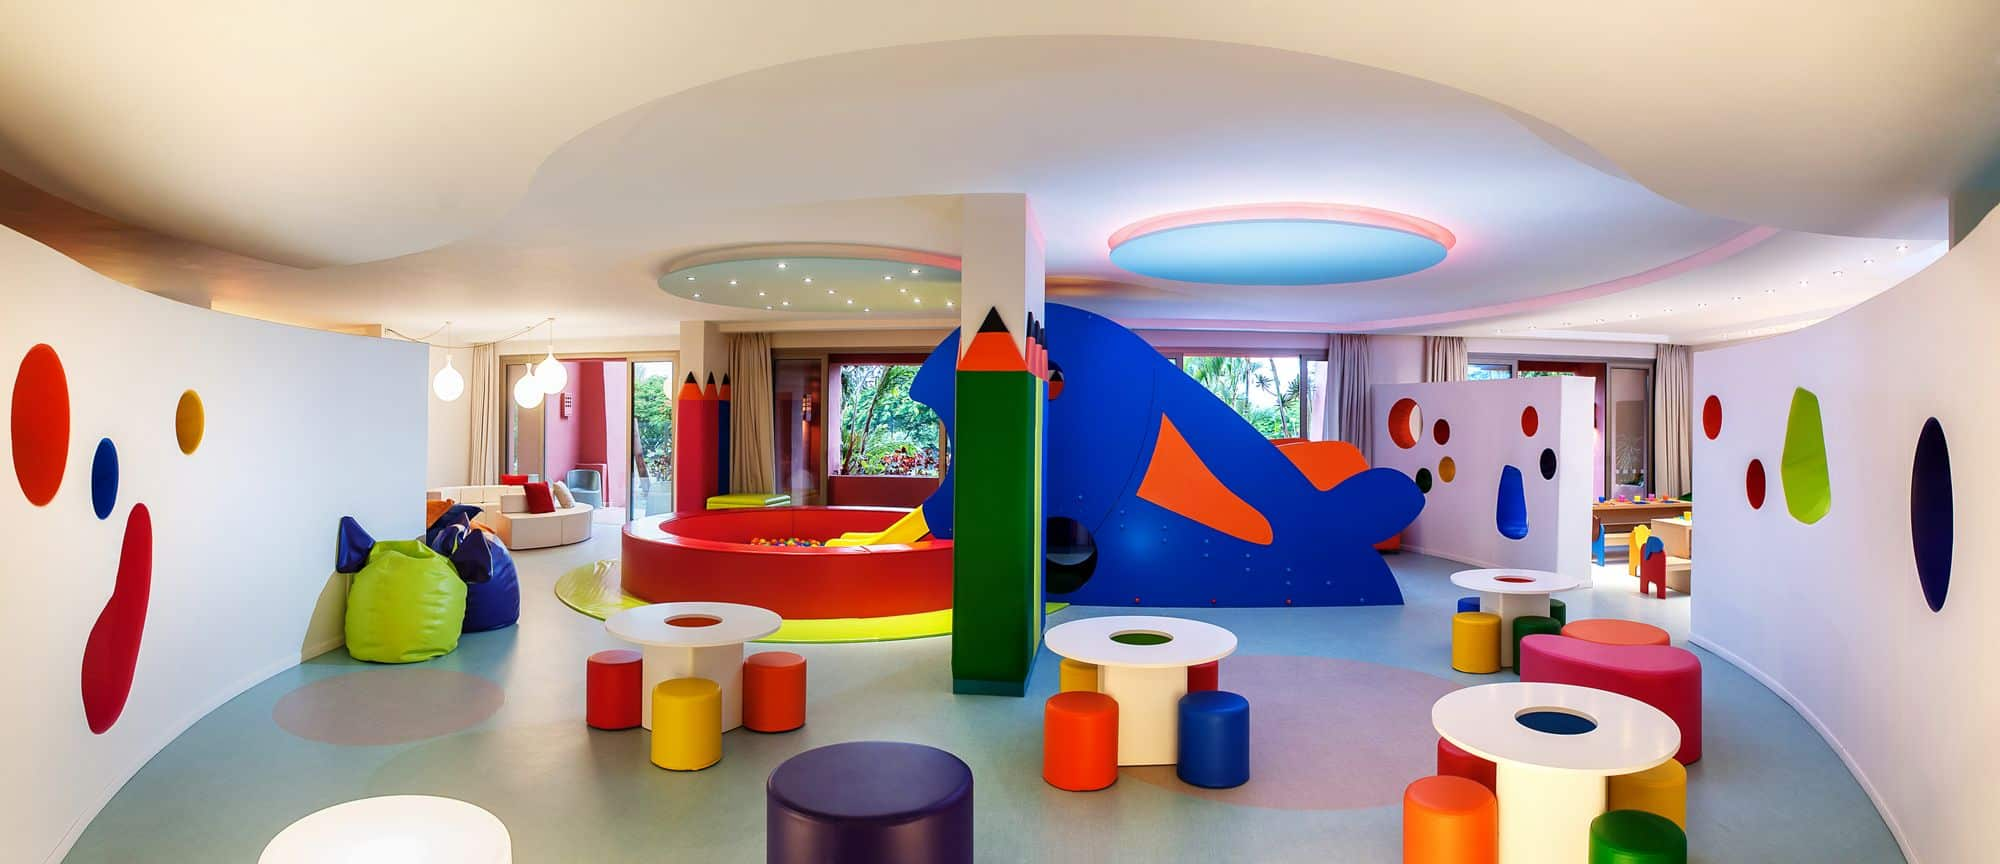 Colorful Indoor Play Area - Ritz Kids Club, Abama, Canary Islands